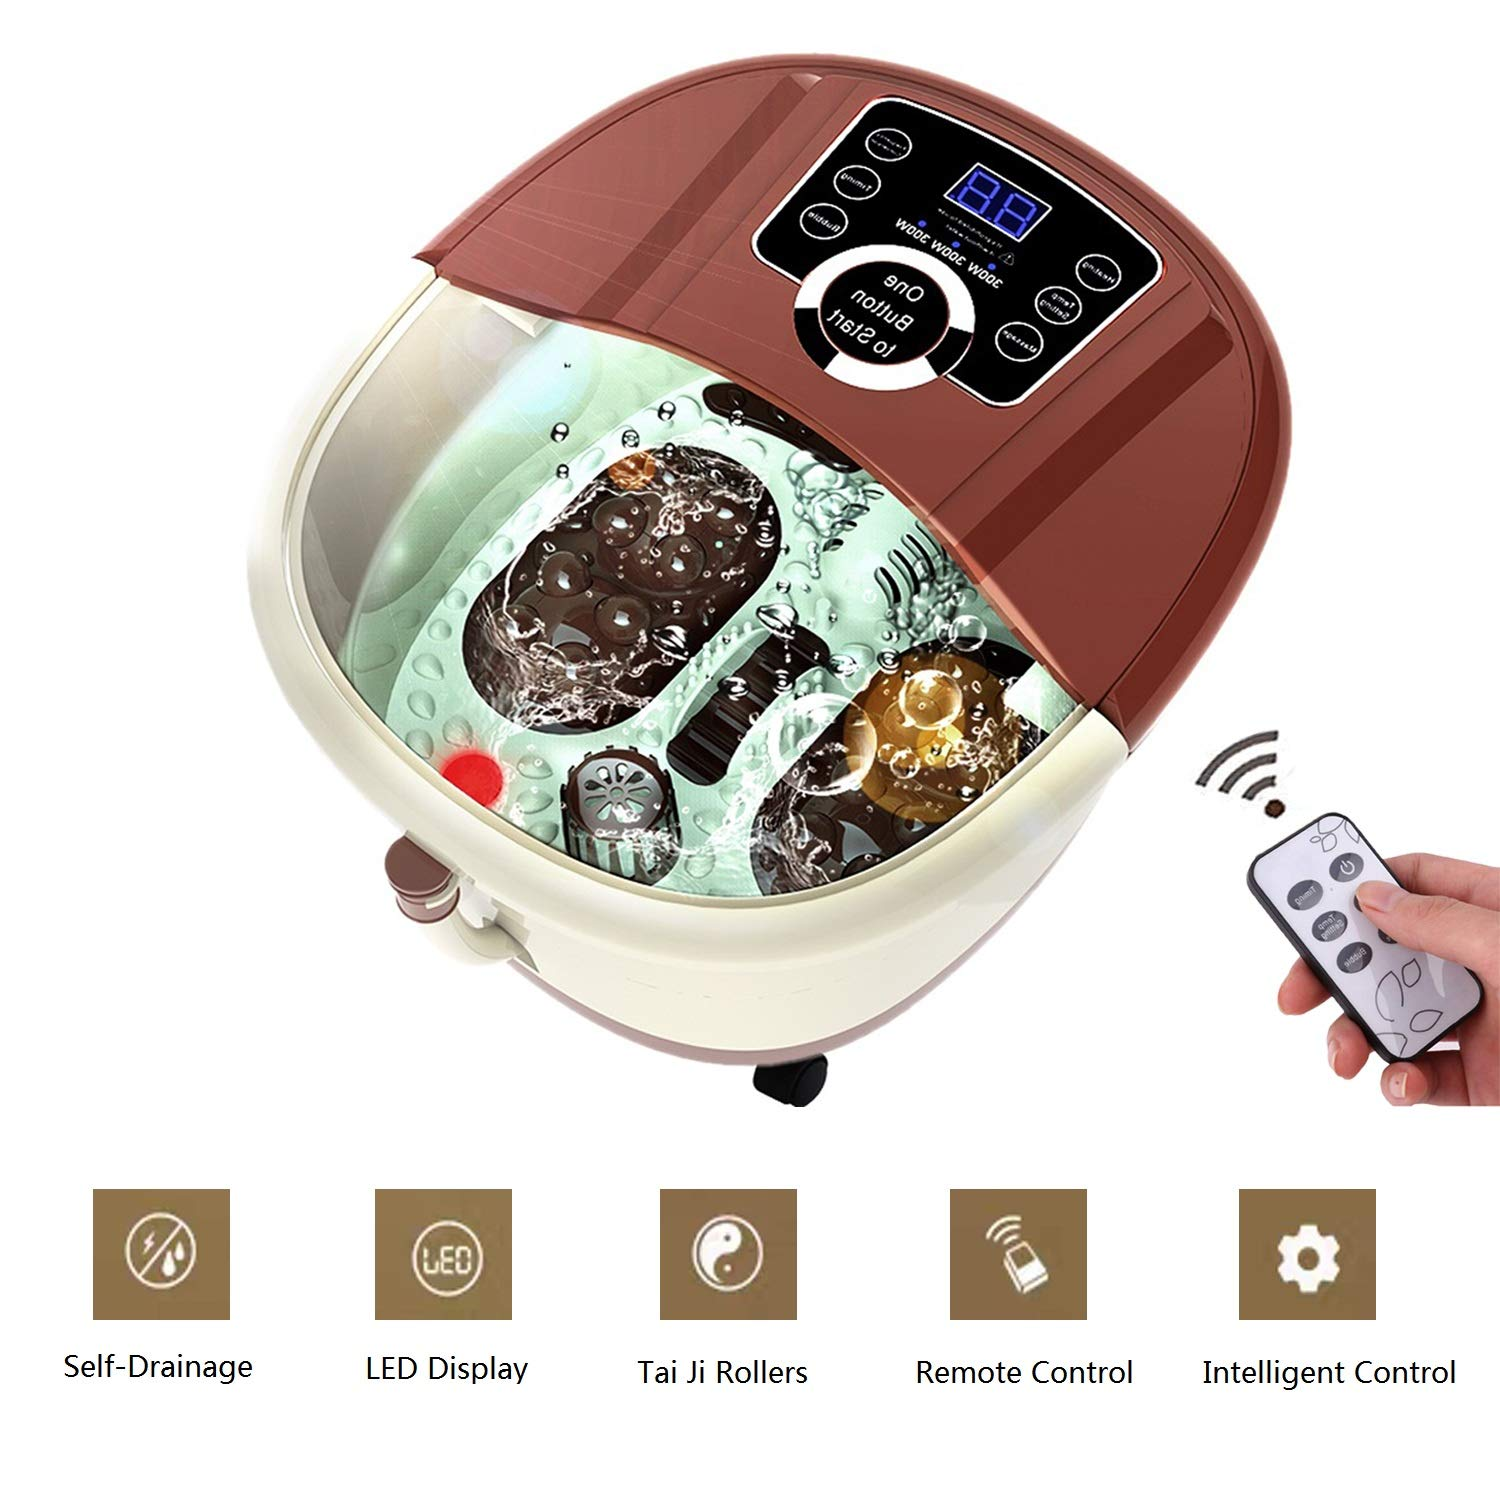 Electric Foot Spa Massage with Heating, Oxygen Bubbles and High-Frequency Vibration Massage, Foot Spa Machine Adjustable Time Temperature Brown